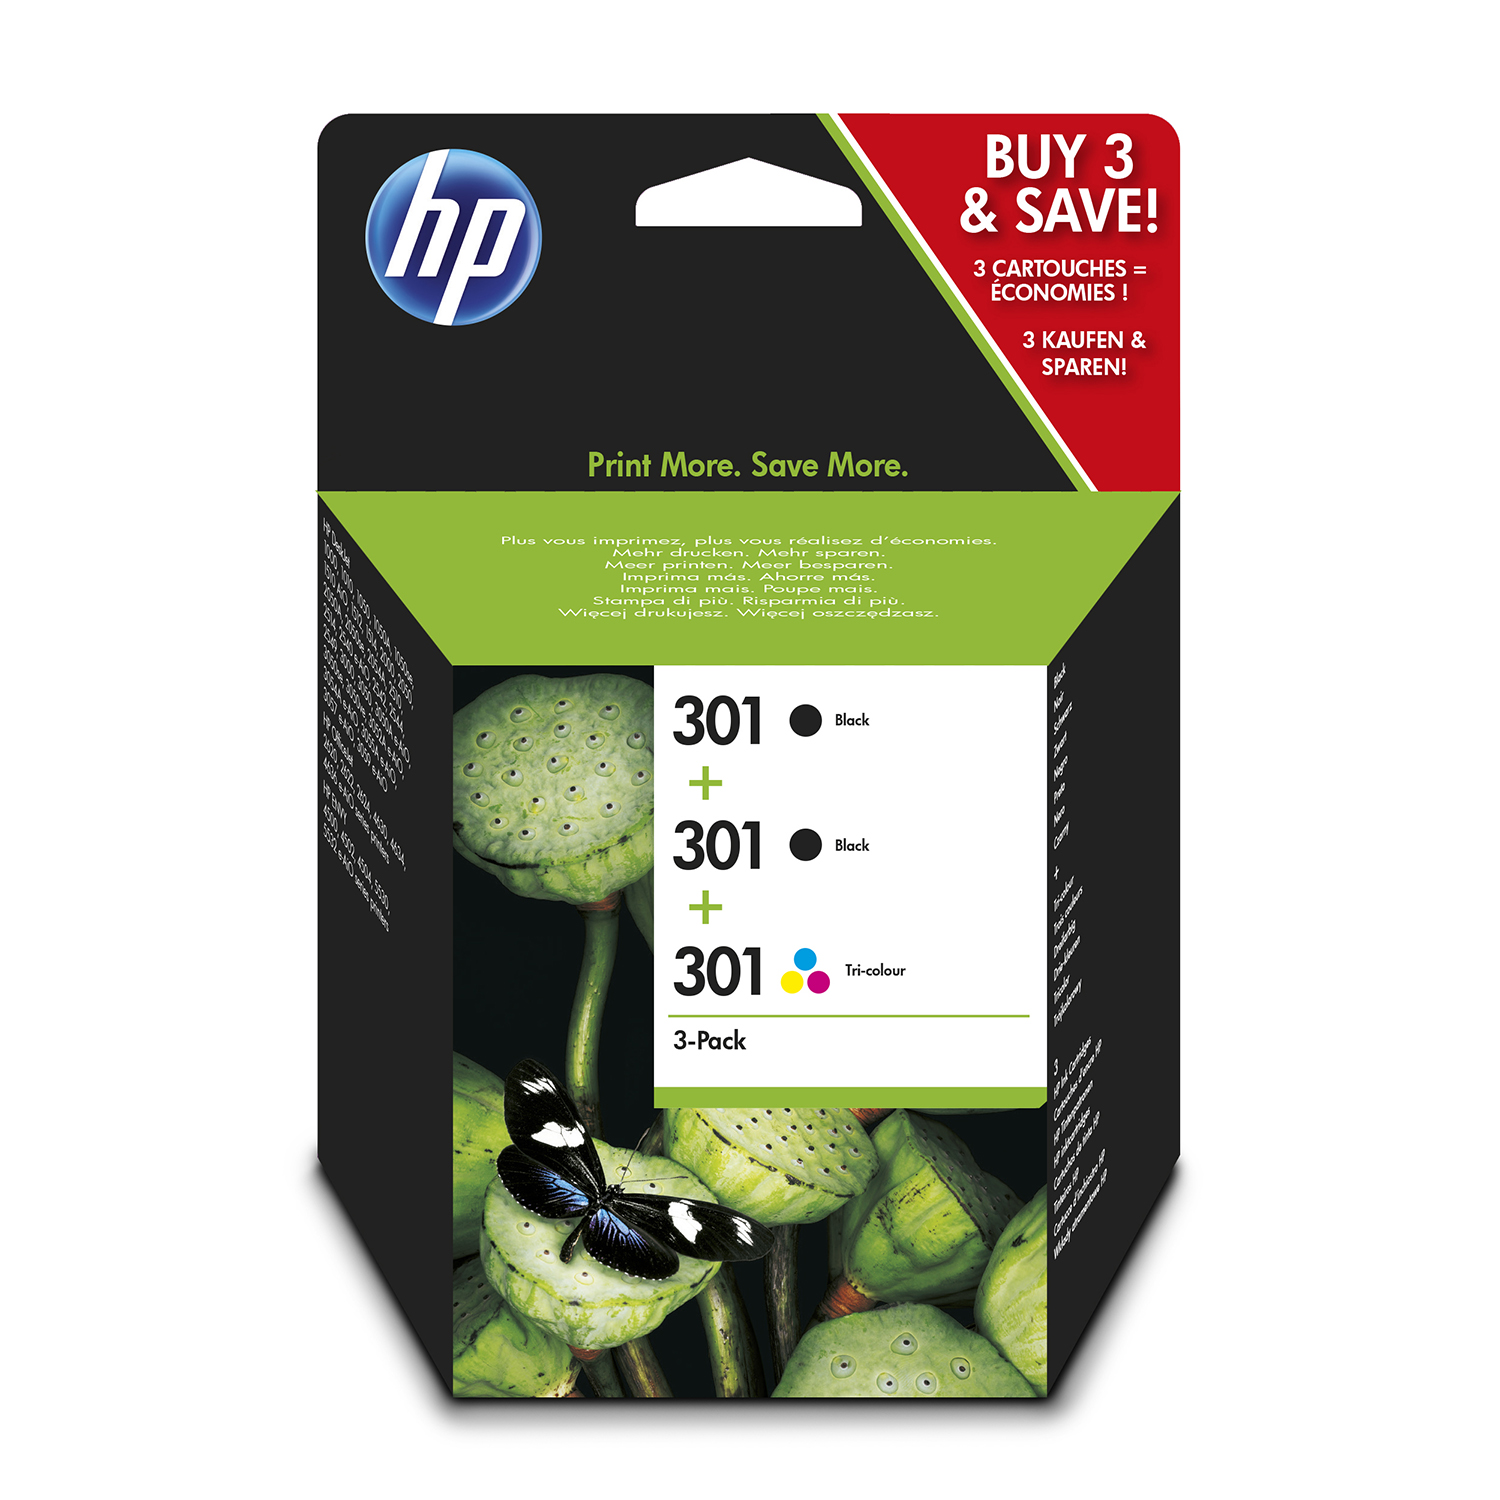 Hewlett Packard 301 Inkjet Cartridge Blackx2 190pp/Colx1 165pp 9ml Ref E5Y87EE [Pack 3]